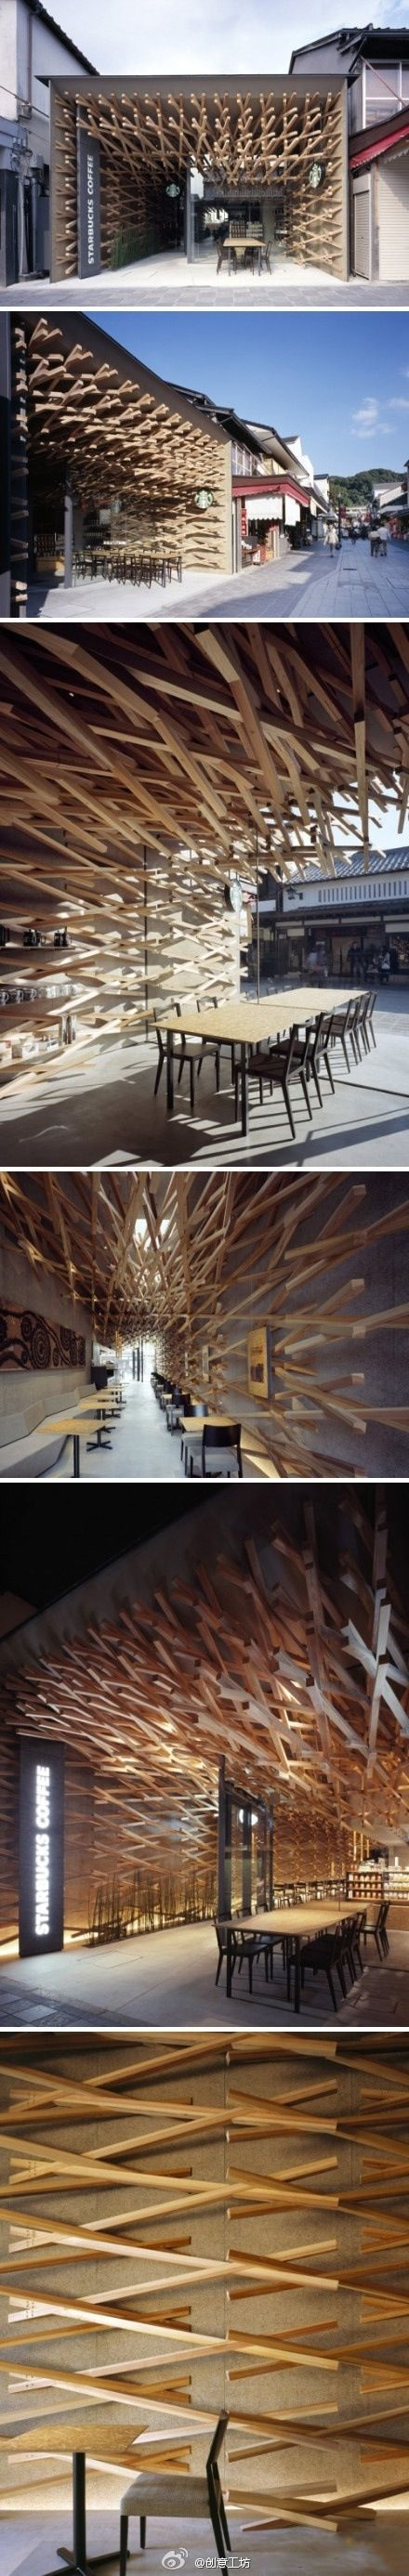 "Coffee ... Tokyo-based and world-renowned architect Kengo Kuma has designed a Starbucks store in Japan located in Fukuoka Perfecture, on the street leading straight to a shrine called Dazaifu Tenmagu, dedicated to a Japanese deity. More than 2,000 woven cedar sticks, creating a loosely woven lattice that extends beyond the storefront's edge. The shop's design is, according to Kuma the ""fusion of traditional and contemporary and is made up of natural materials both traditional and modern""."